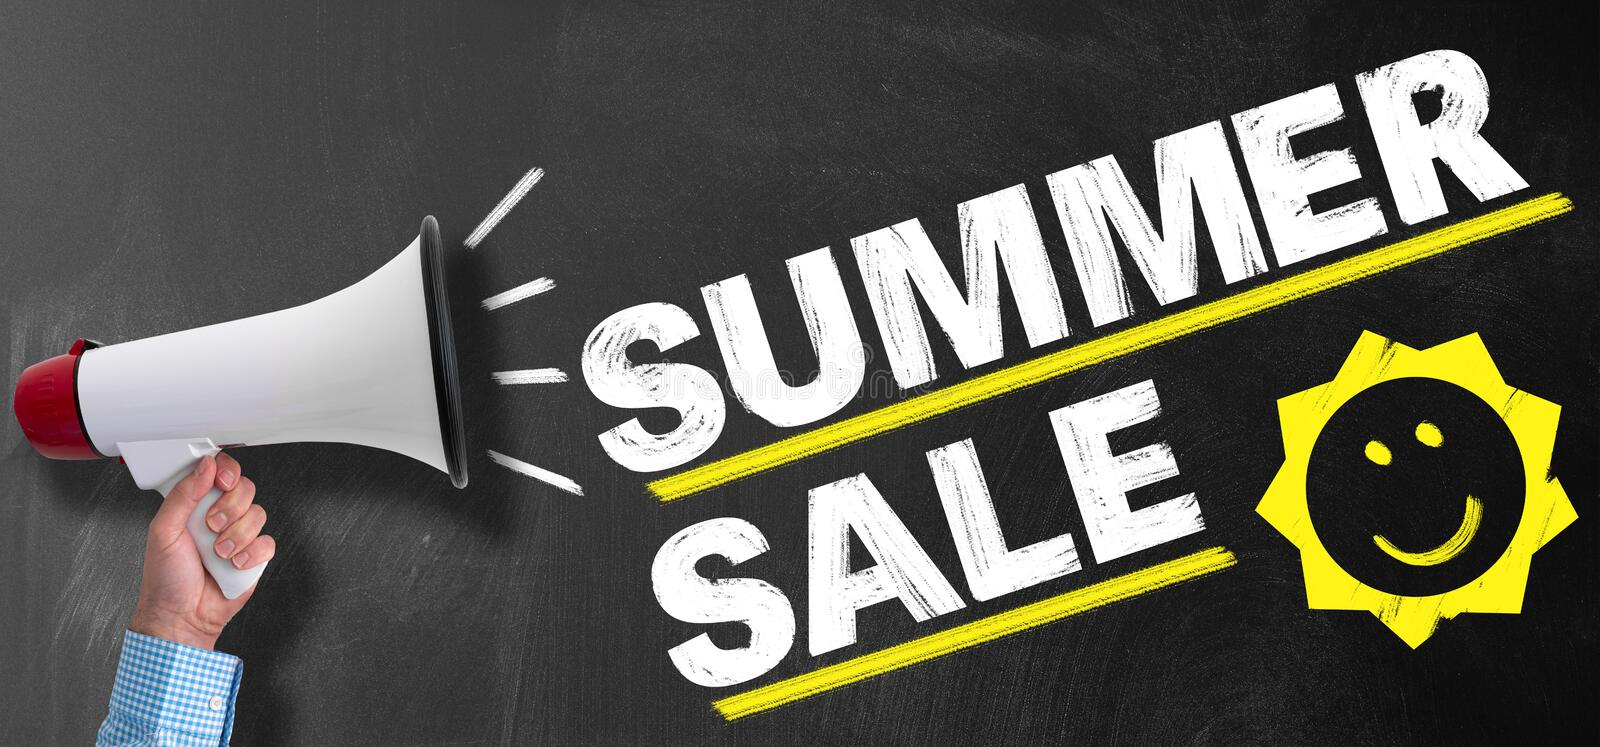 Megaphone or bullhorn against blackboard with text SUMMER SALE and smiling sun icon stock photos